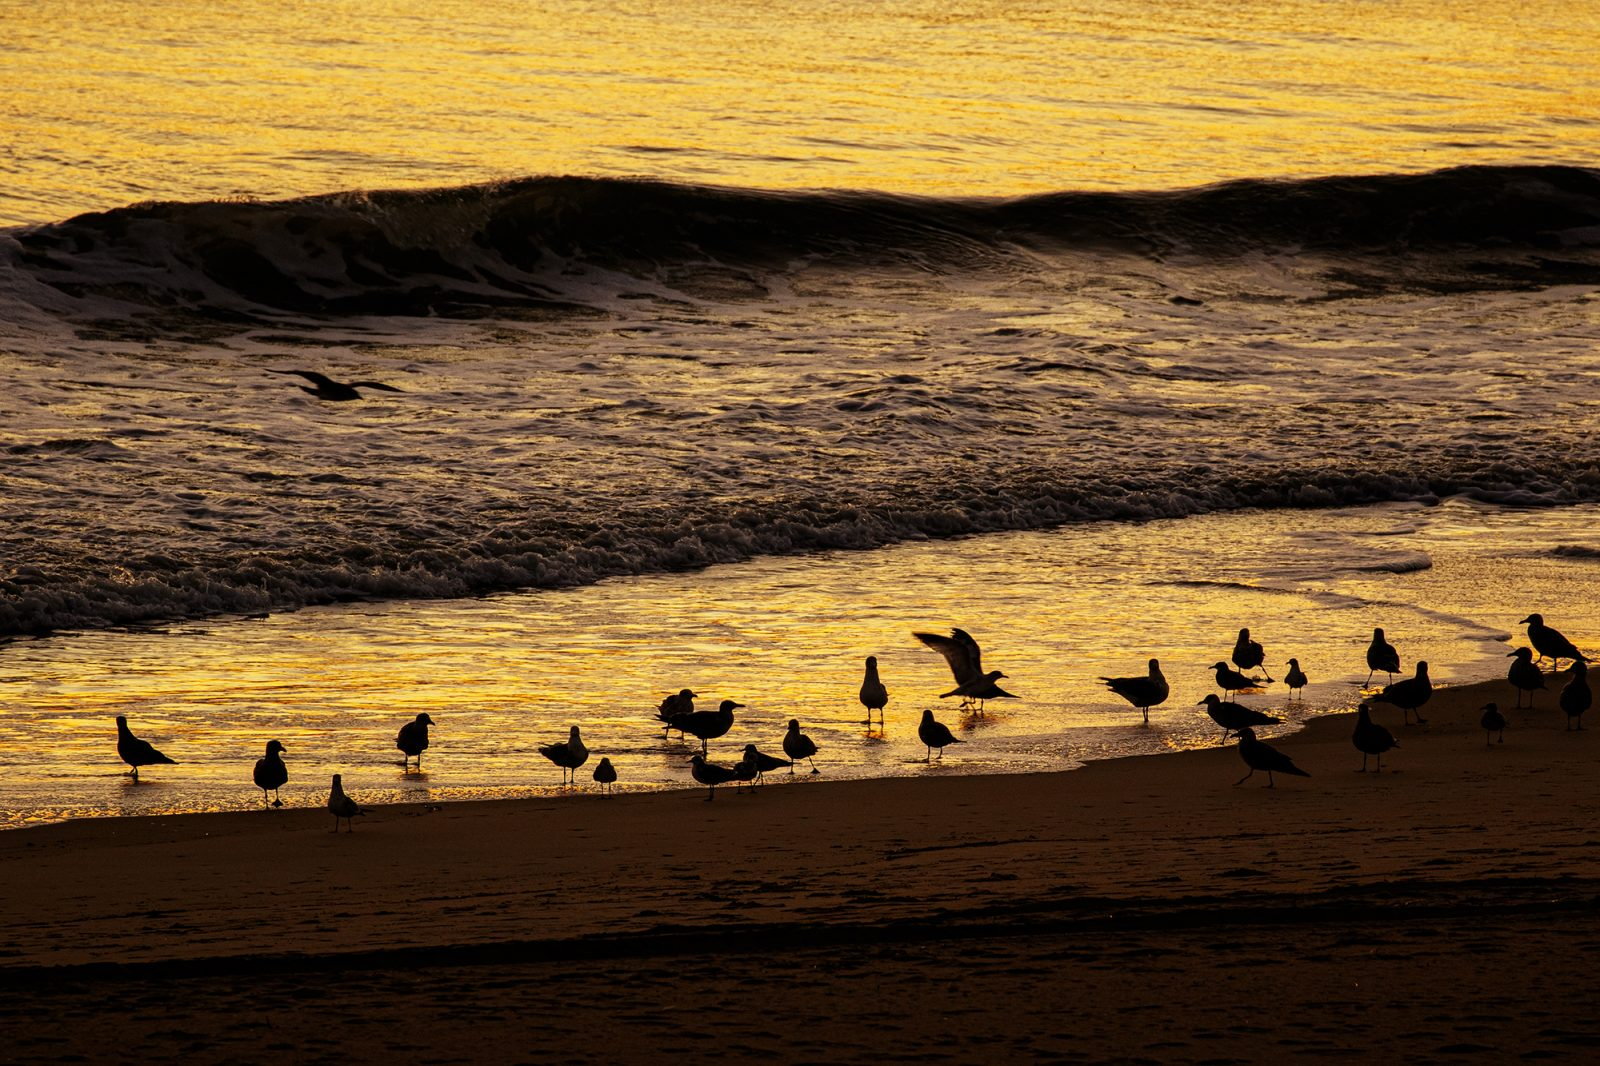 a flock of seagulls at sunrise time